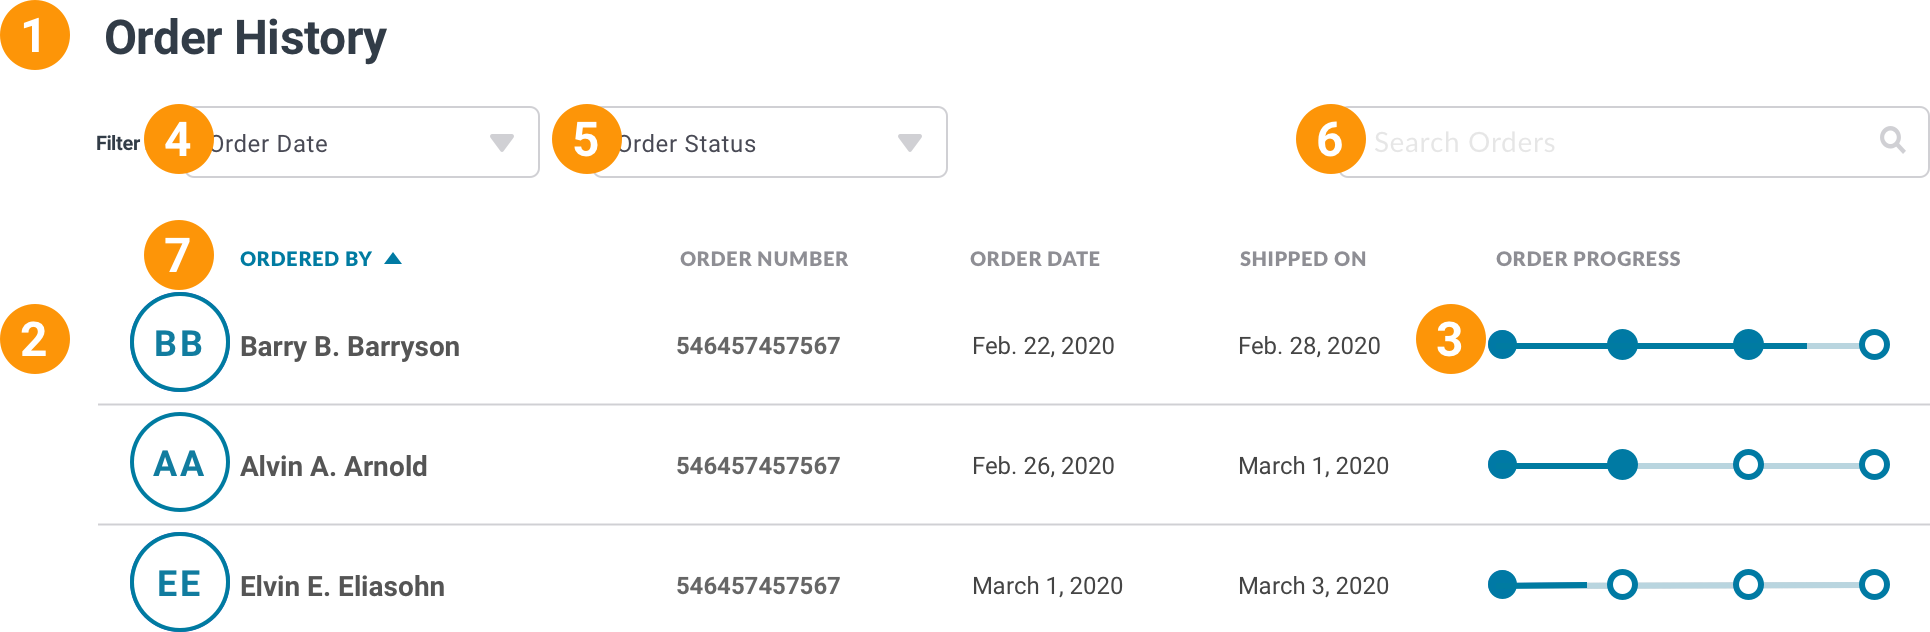 A screenshot of a page with the header Order History. It contains a filter bar with two selects, a search field and a table row with the user's intials, user's name, order number, order date, order ship date and a progress bar showing the order has shipped.